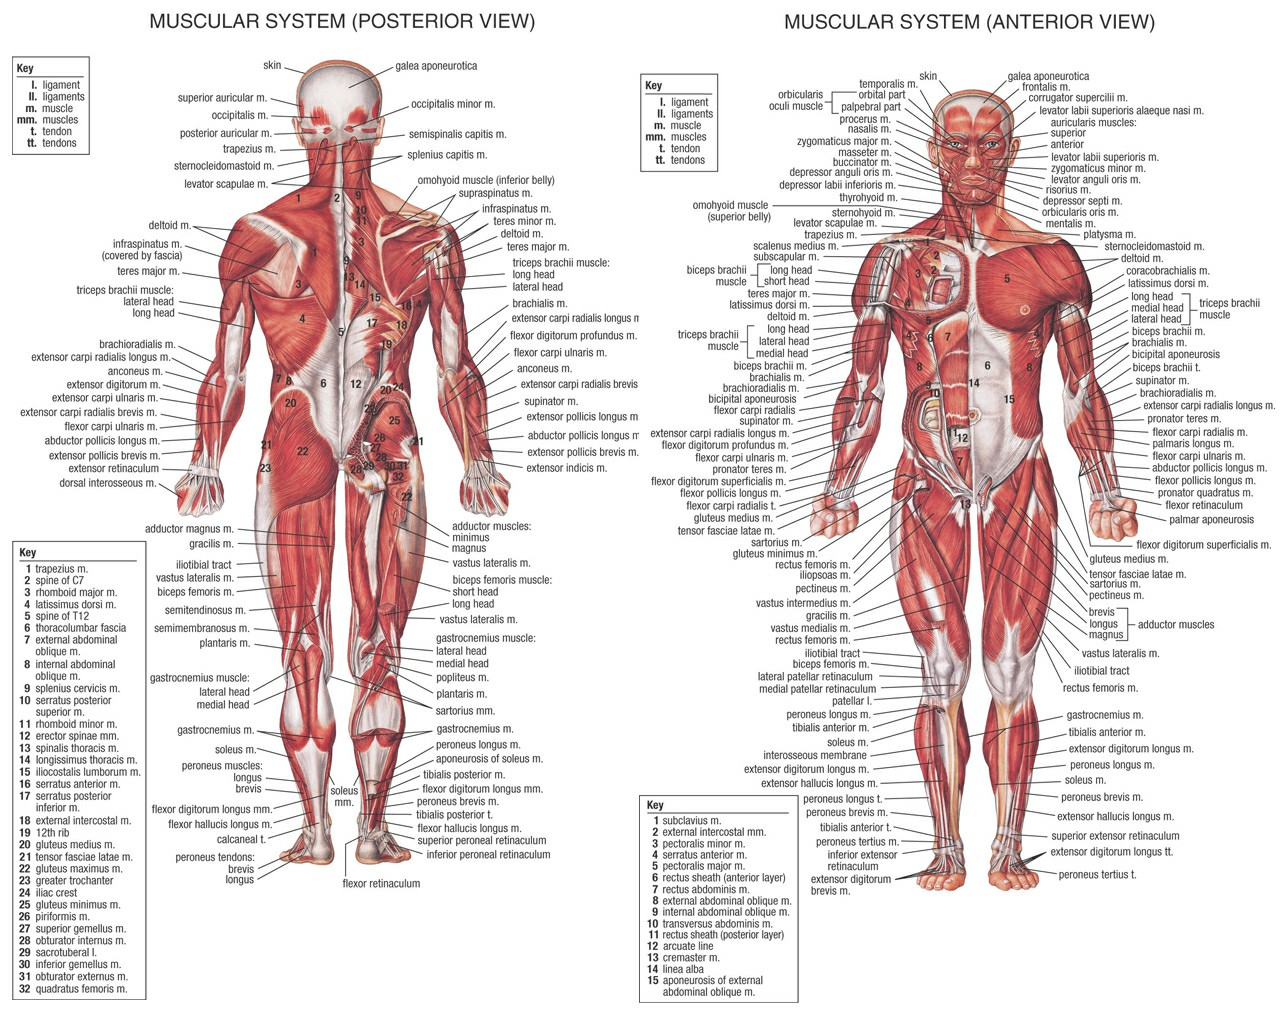 Muscles Of Human Body Diagram Human Anatomy Muscles | Kool.tk Pictures Wallpapers